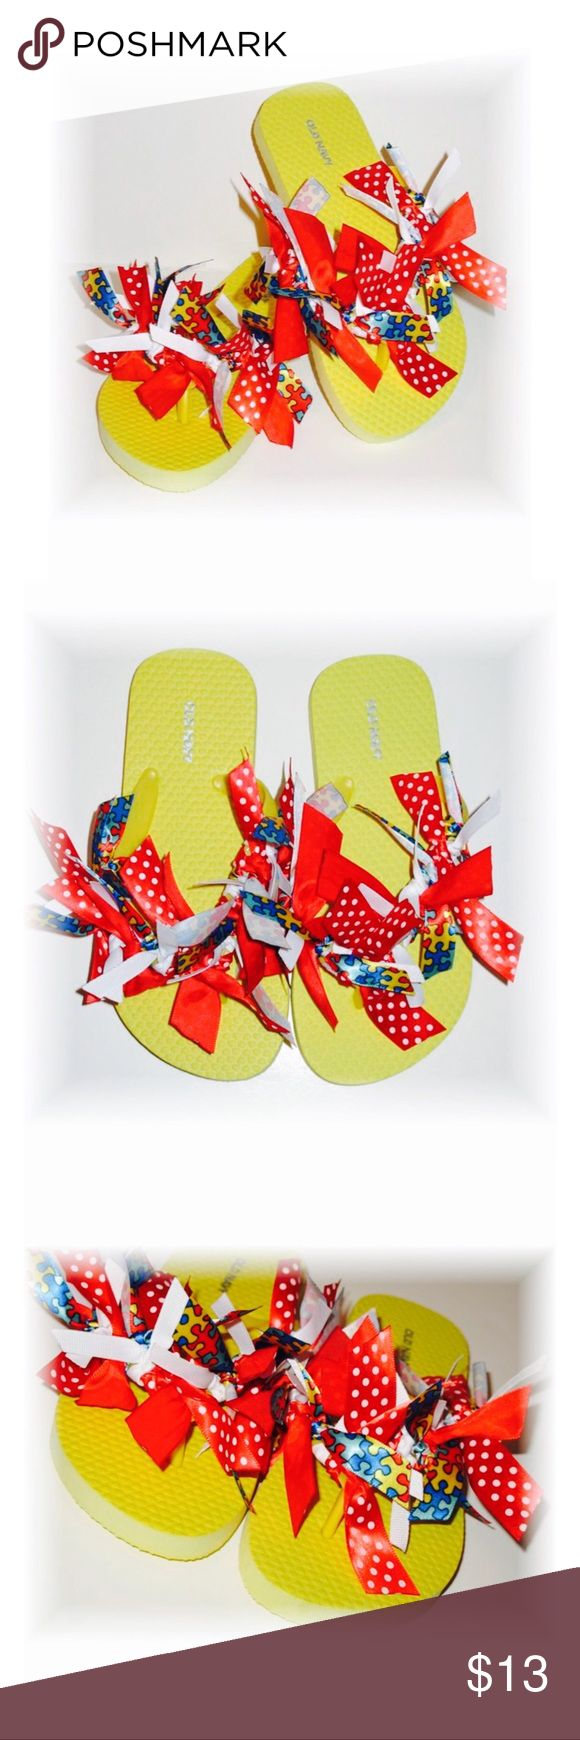 Autism Awareness Ribbon Flip Flops size 1/2 UP FOR SALE TODAY ARE THESE ADORABLE BOUTIQUE FLIP FLOPS!!     ♥Autism awareness  ♥GIRLS SIZE 1/2- made with Old Navy flip flops   ♥YOU WILL RECEIVE ONE PAIR OF FLIP FLOPS WITH A BEAUTIFUL MIX OF HAND CUT AND TIED RIBBONS! ALL ENDS ARE HEAT SEALED TO PREVENT FRAYING.                                                        ♥This is a new hand embellished item made by me from my online and craft faire boutique!    THANKS SO MUCH FOR STOPPING BY TO…